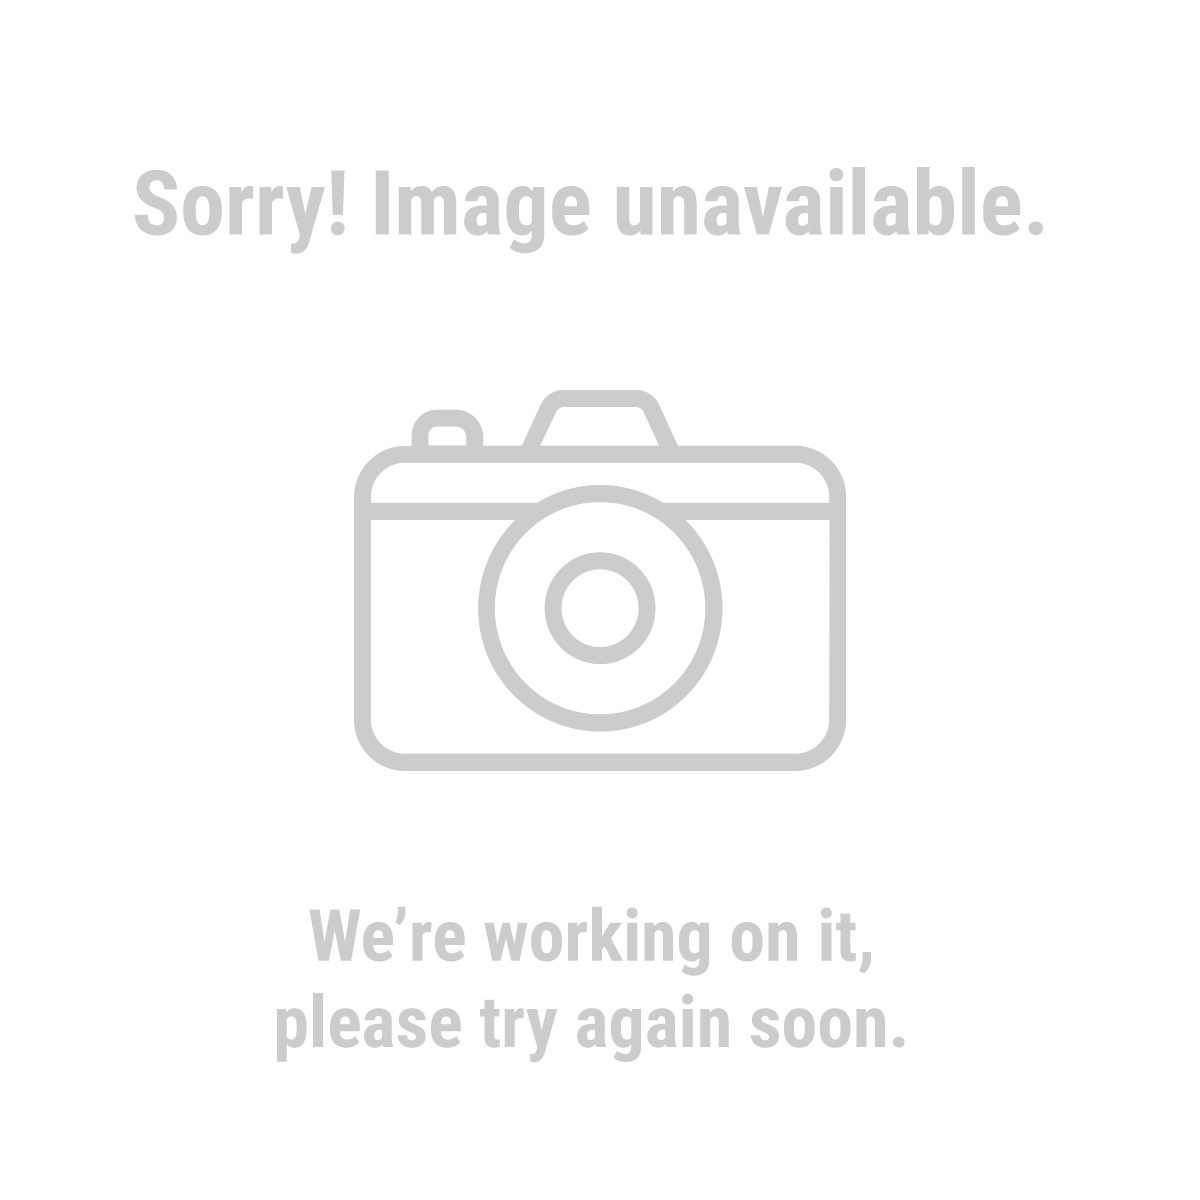 "Haul-Master 47702 3/8"" x 15 Ft. Chain Coil"